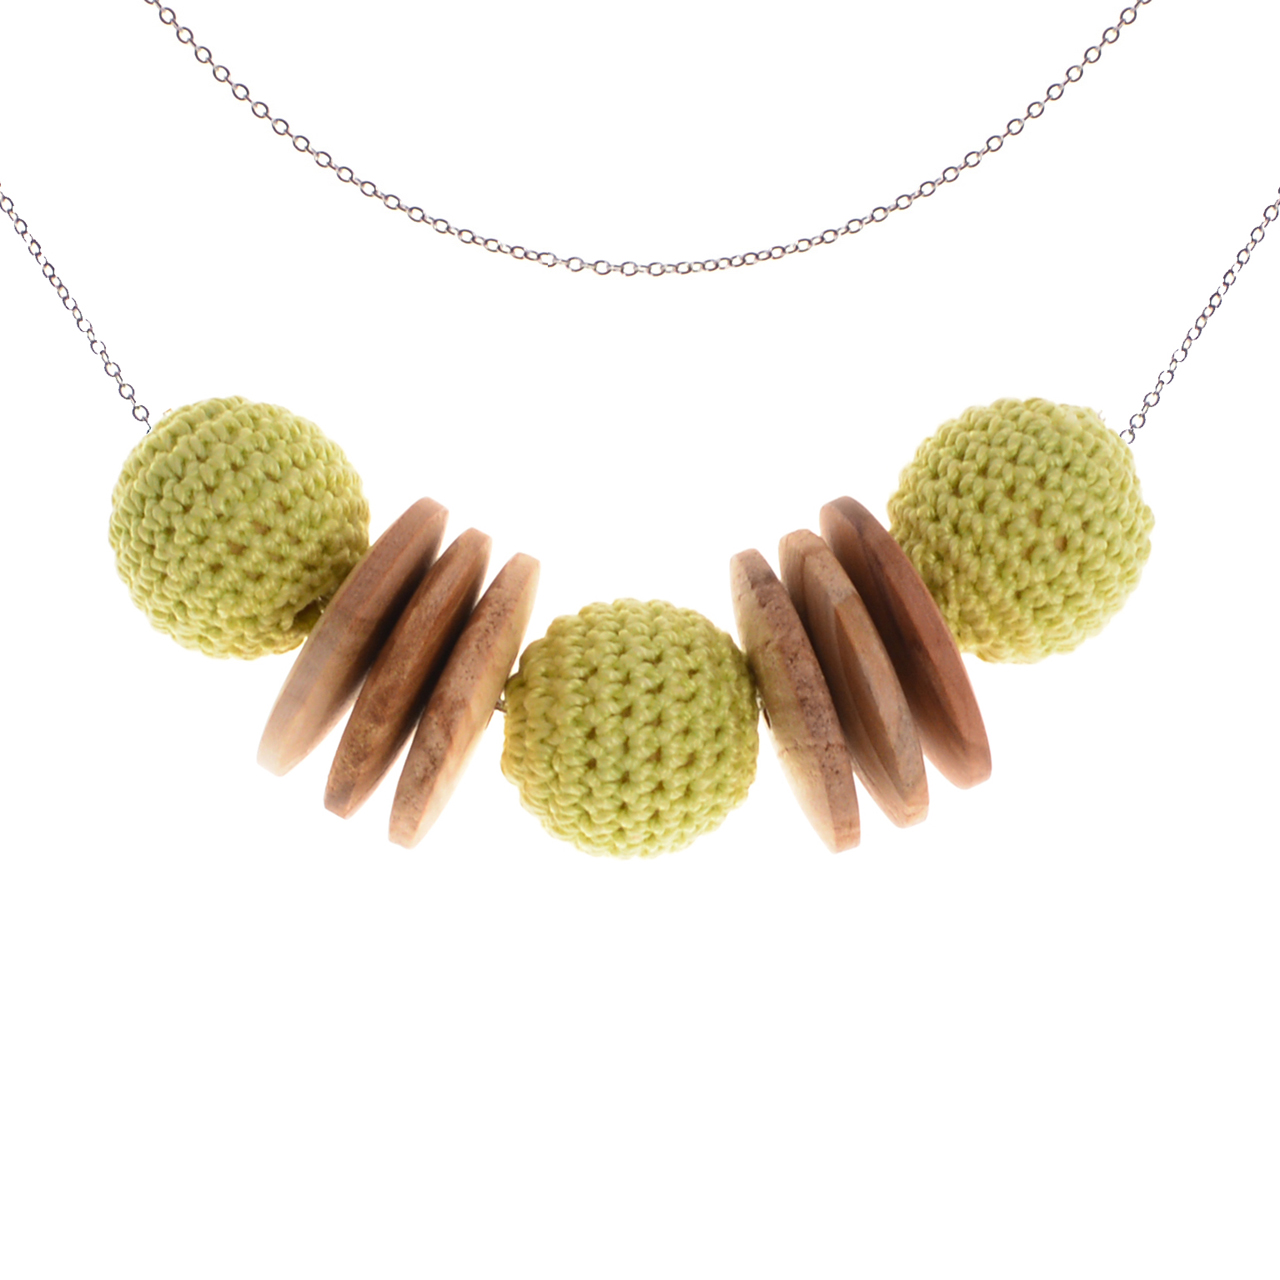 Mon Bijou - Necklace Elegance Nature - Light Green | The Design Gift Shop